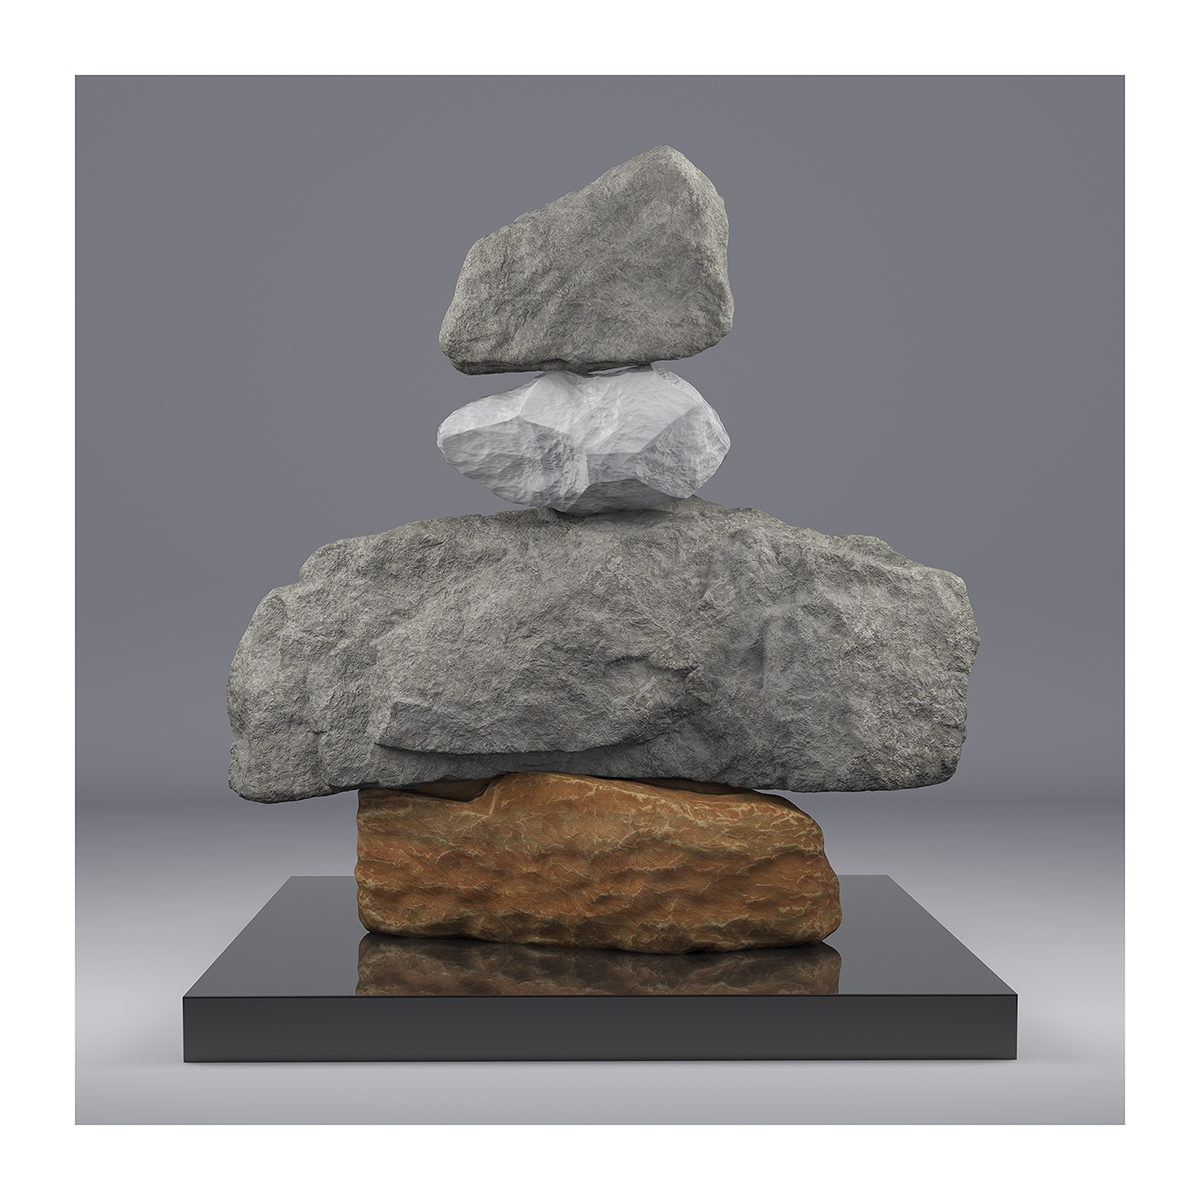 I will not Make any more Boring Art V 002 1 - 2020 - I will not Make any more Boring Art. V. (Rock Balancing)